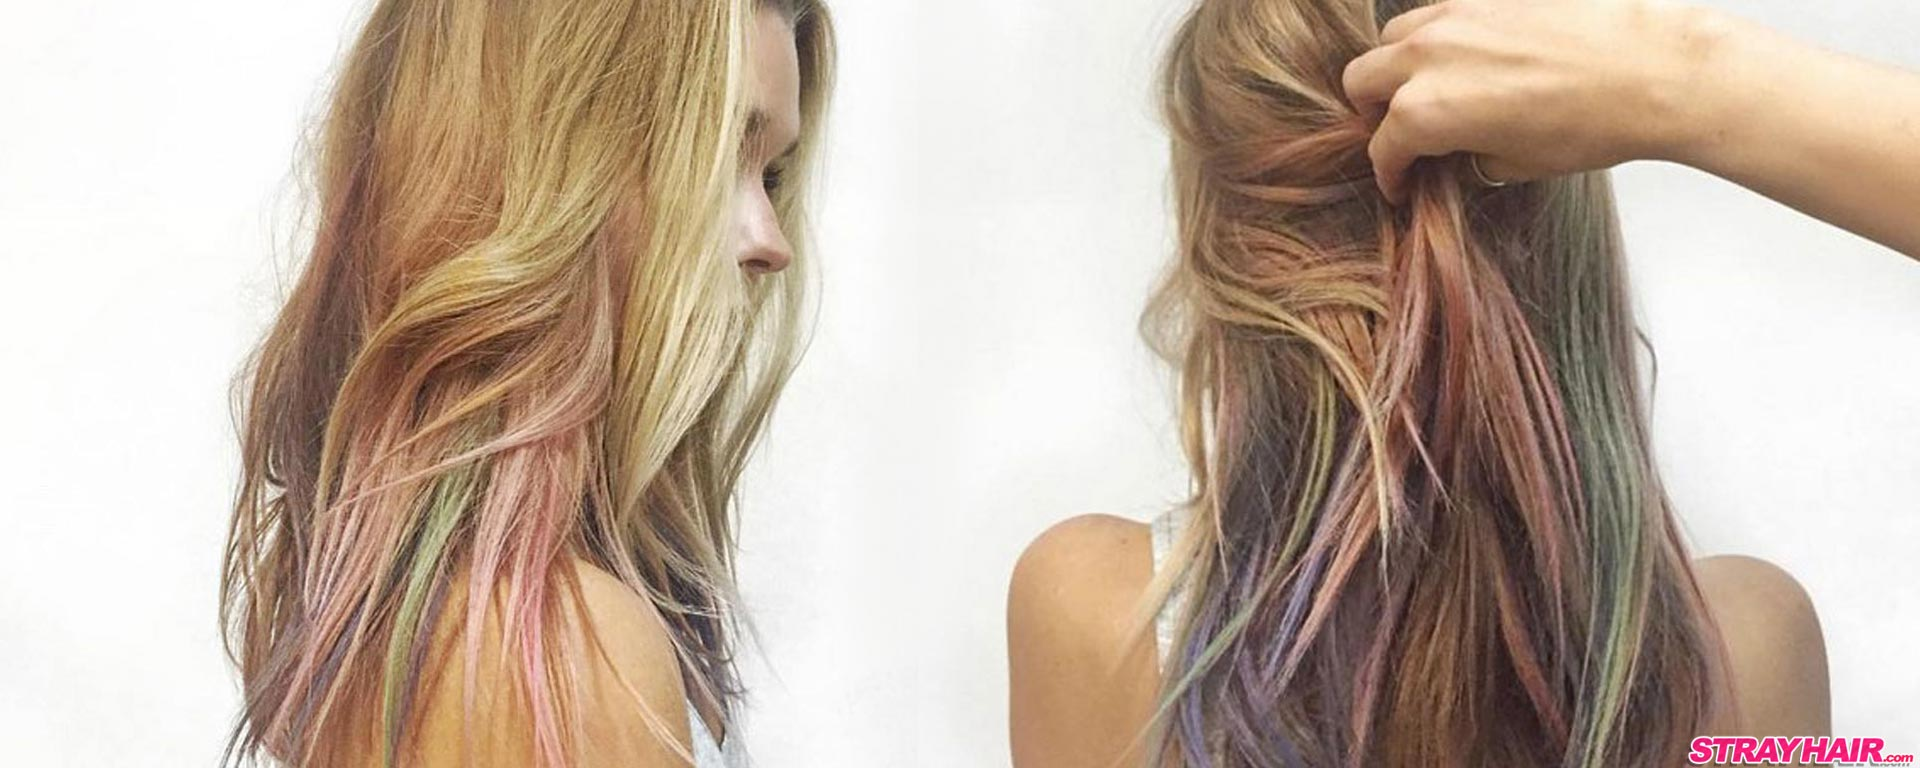 Fluid-Hair-Painting-hair-color